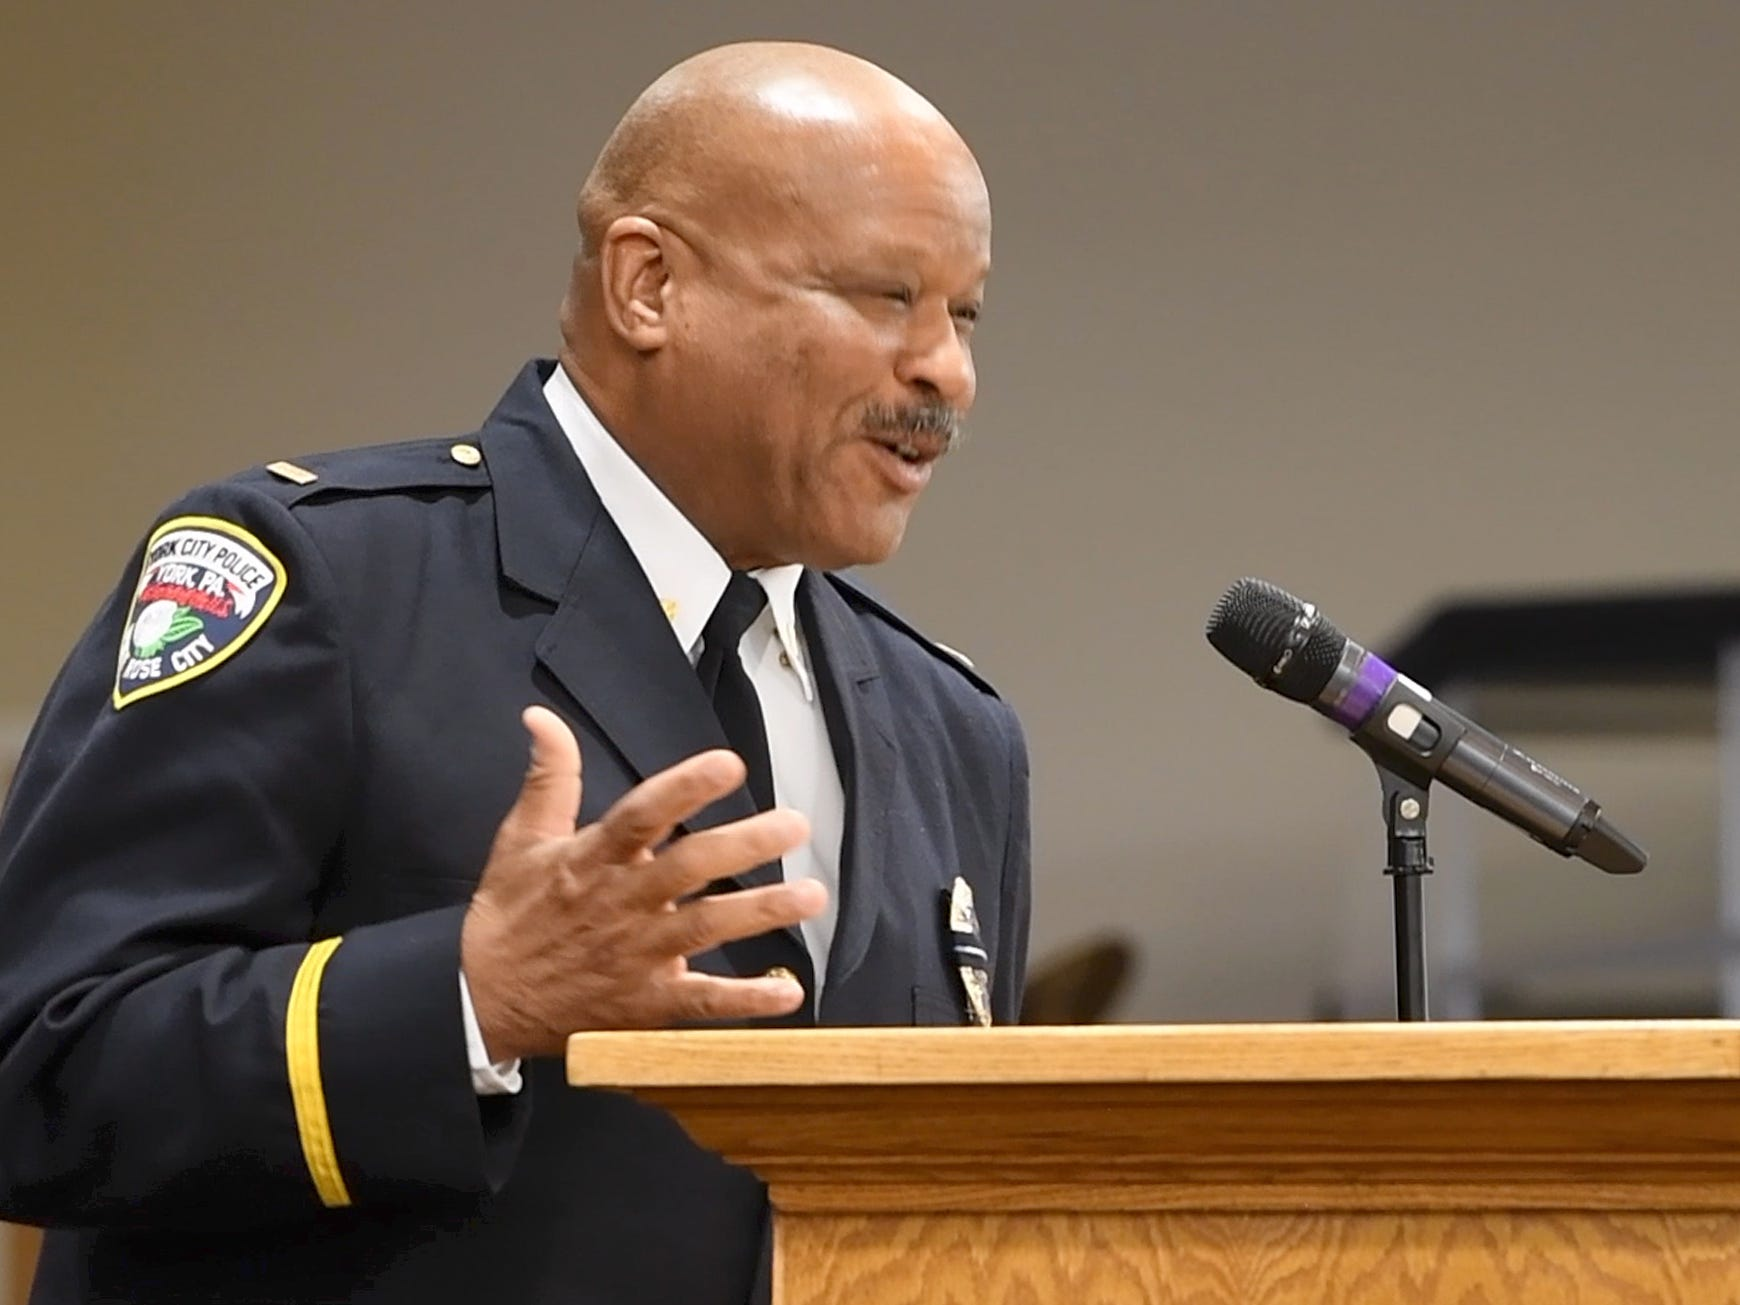 Lt. Gene Fells, of the York City Police Department, honors Bishop Scott during the Bishop Carl H. Scott Street Naming Ceremony at Bible Tabernacle Church.